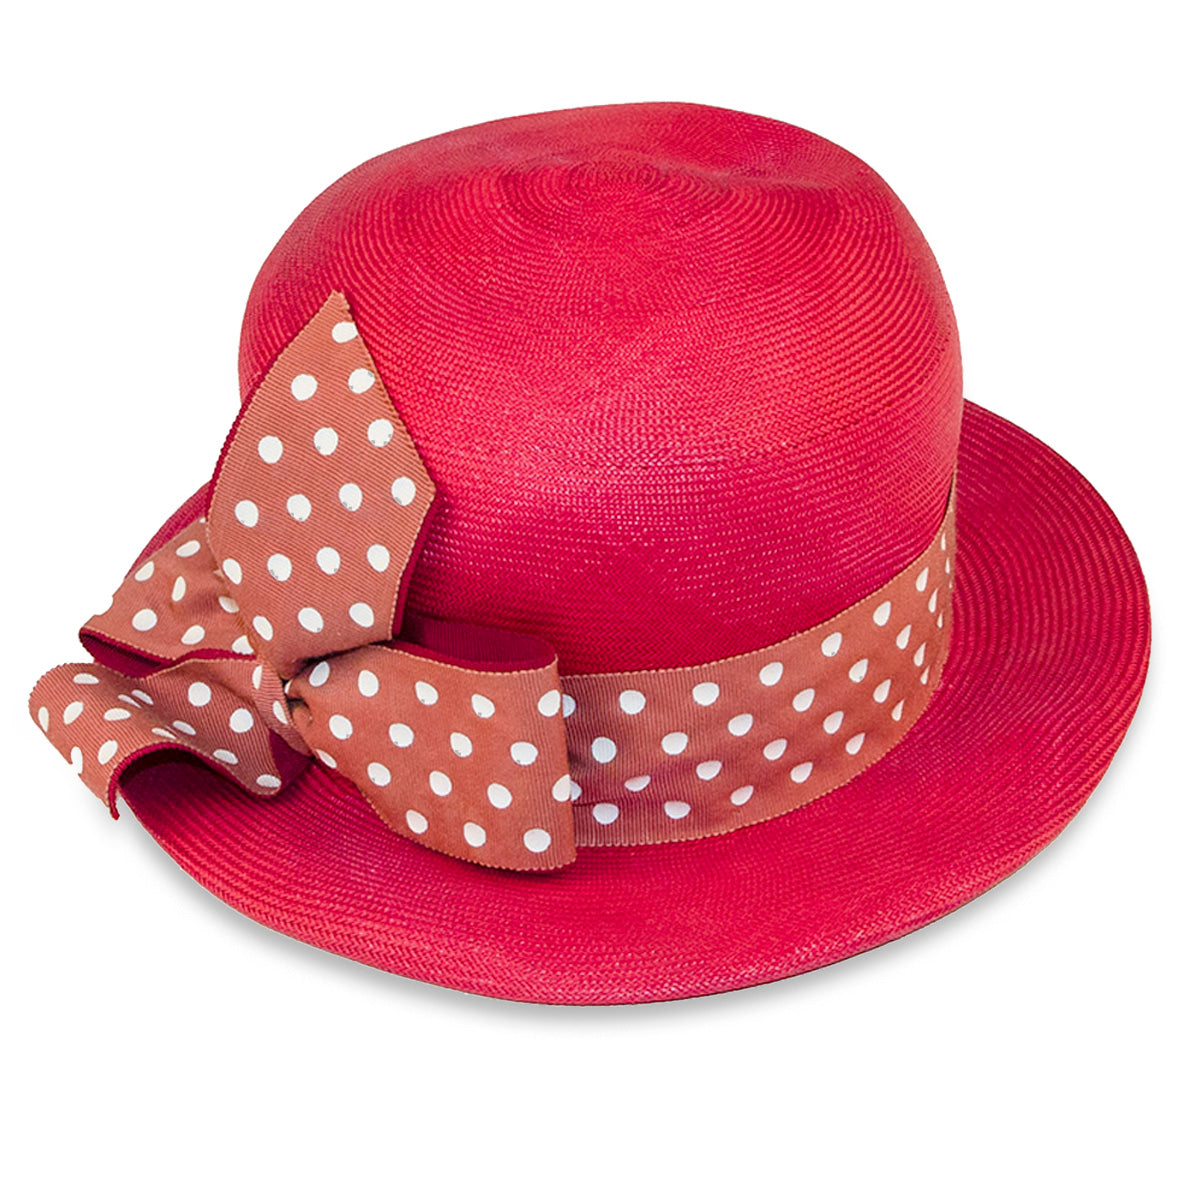 Vintage Red Straw Hat Polka Dot Hatband & Bow, 1960s hat